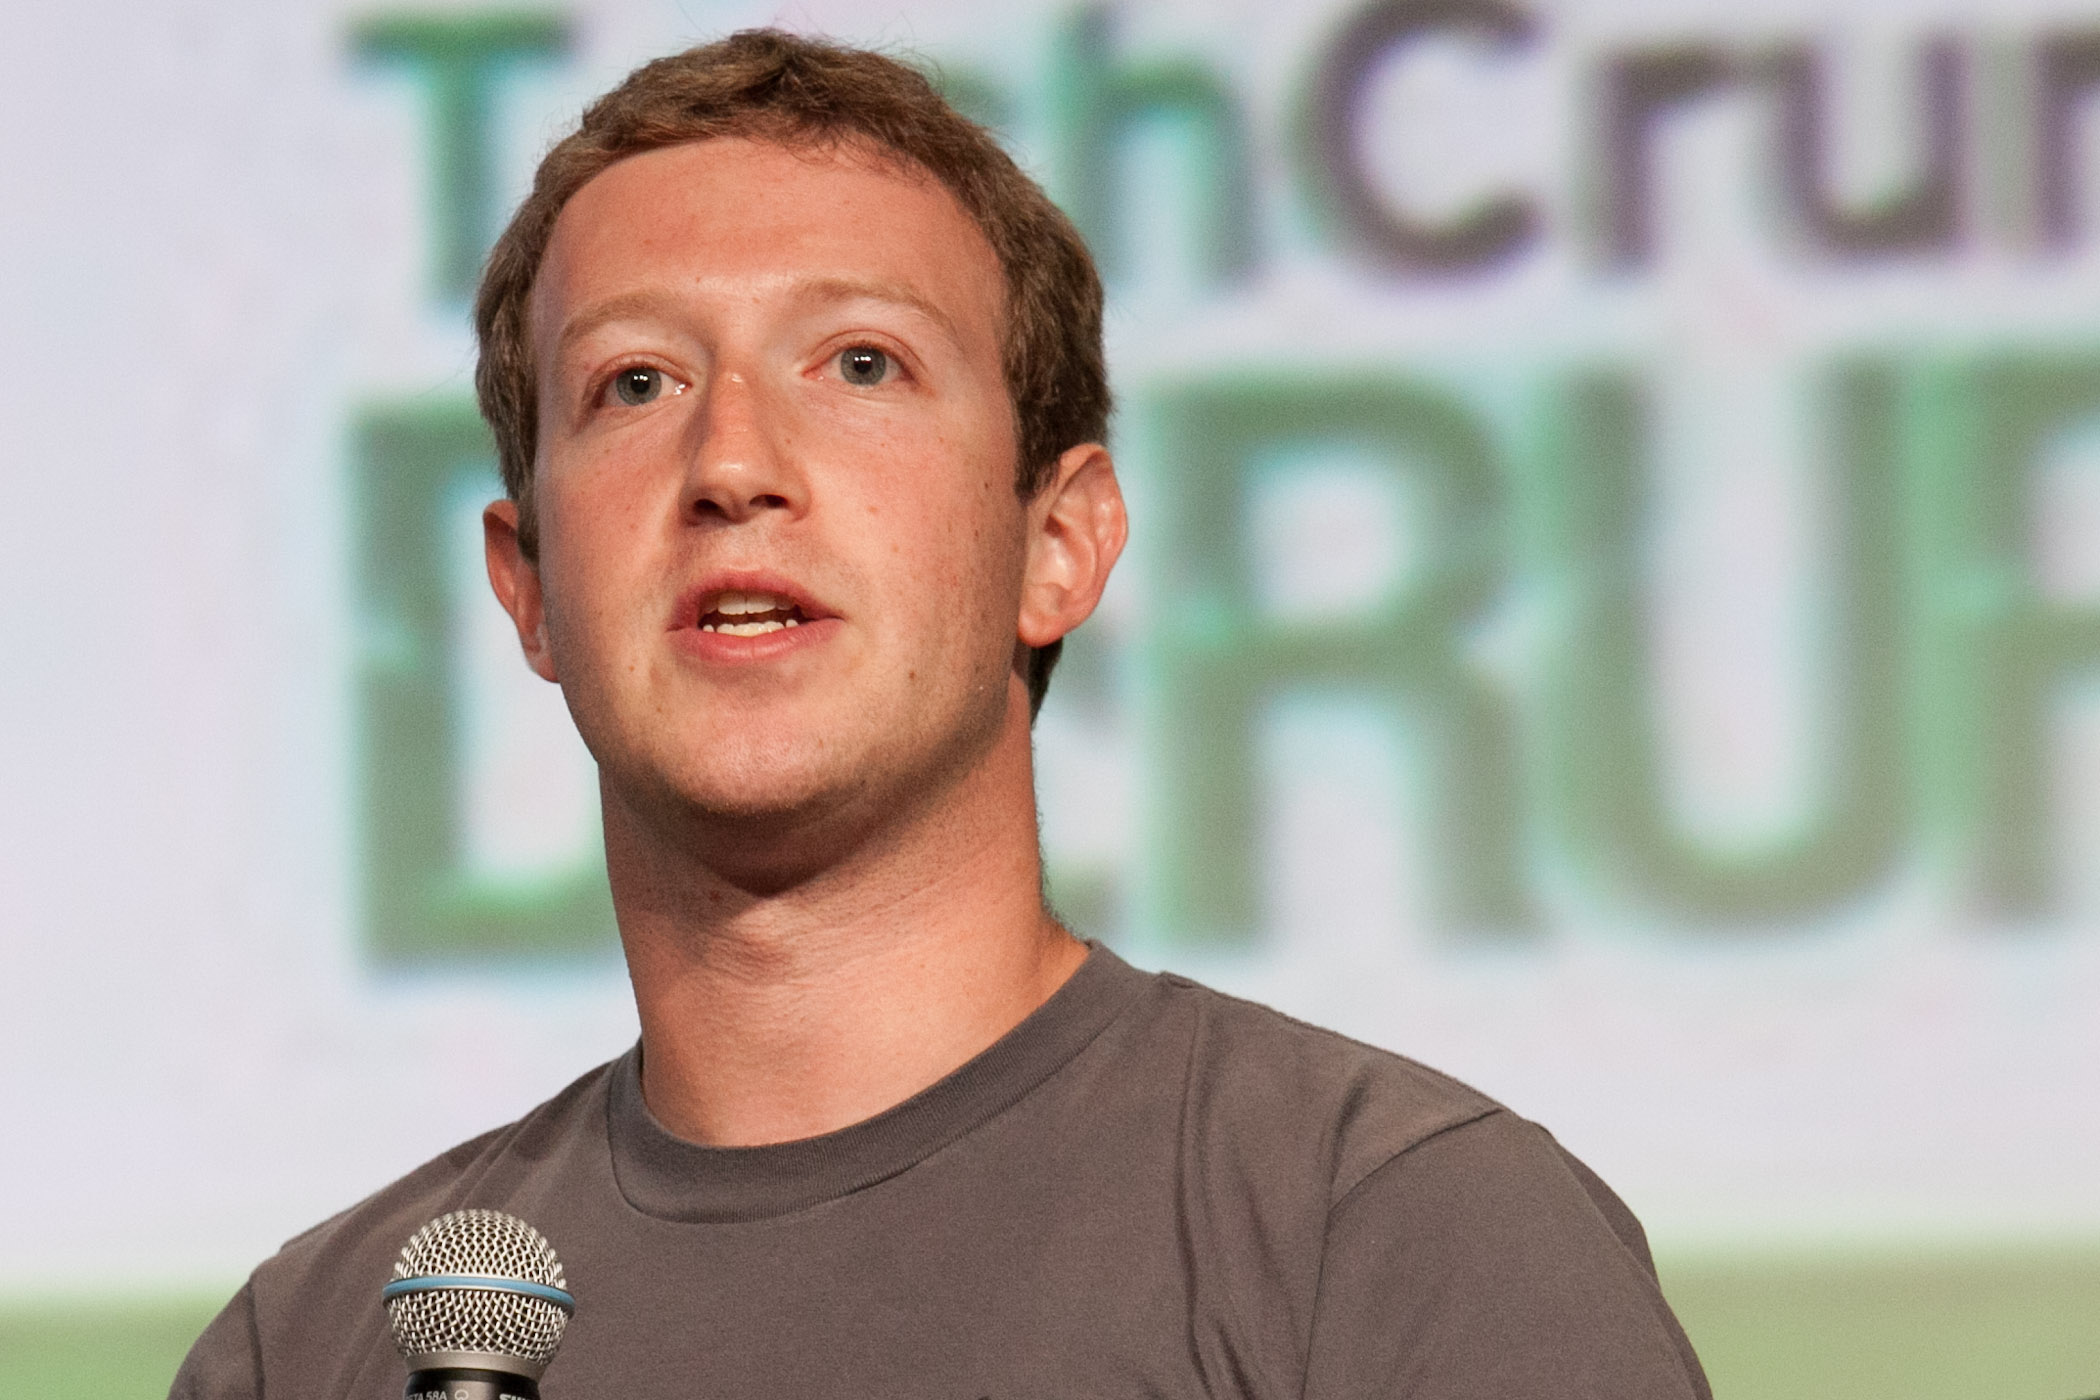 UPDATE 2-Facebook CEO may have known of questionable privacy practices - WSJ